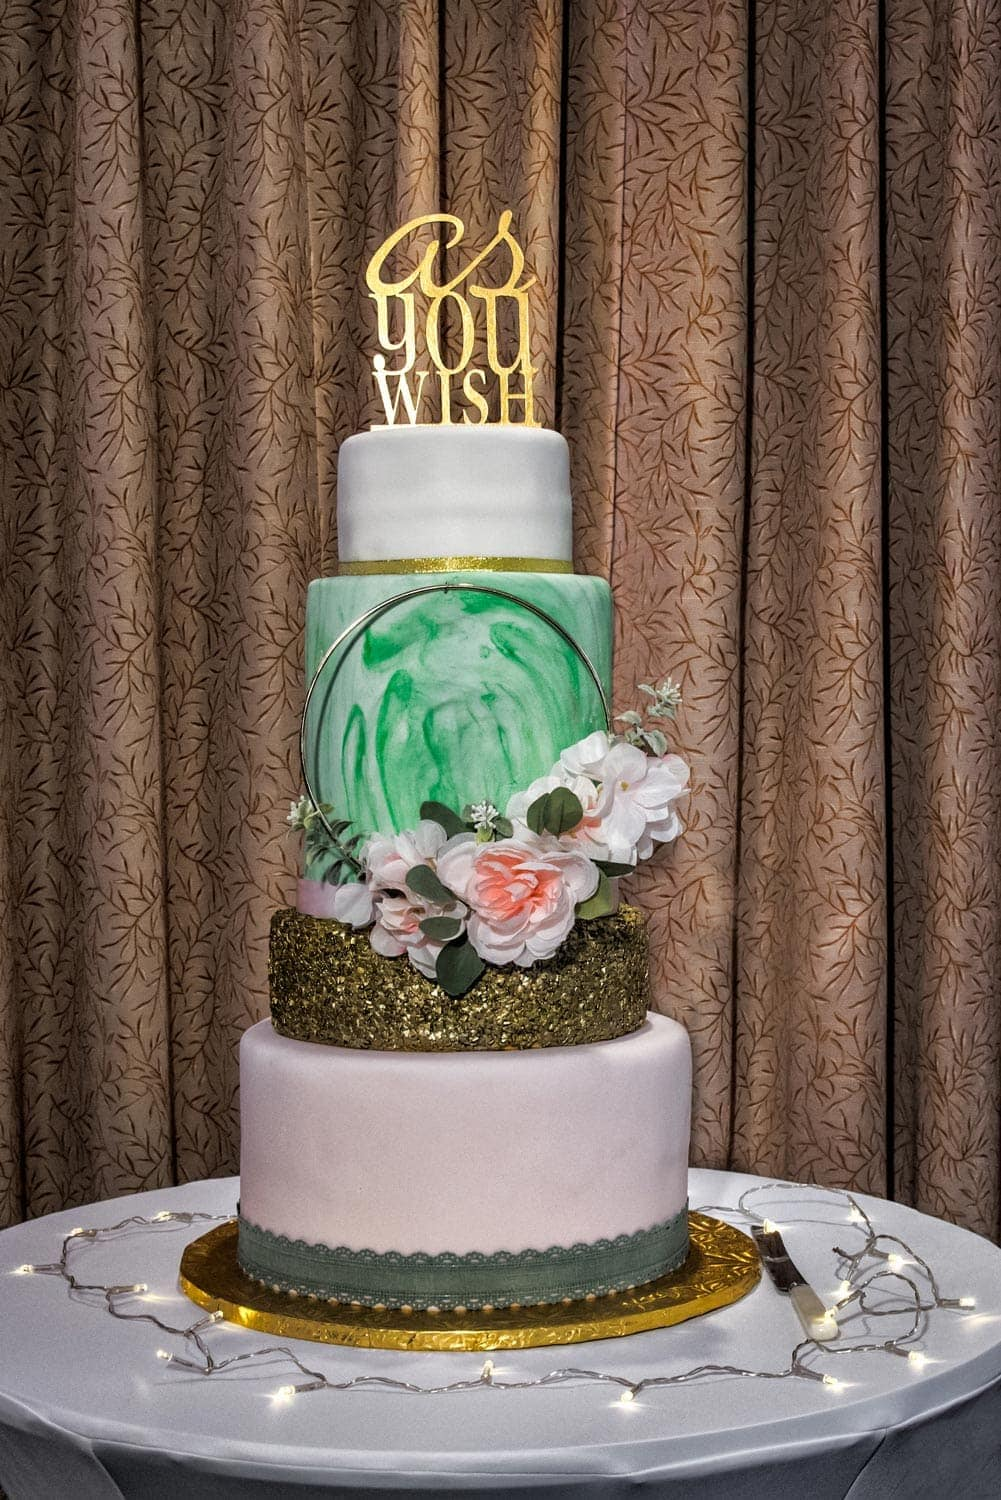 A 4 tier wedding cake with gold wedding cake topper designed by the bride at a Best Western Chocolate Lake wedding.